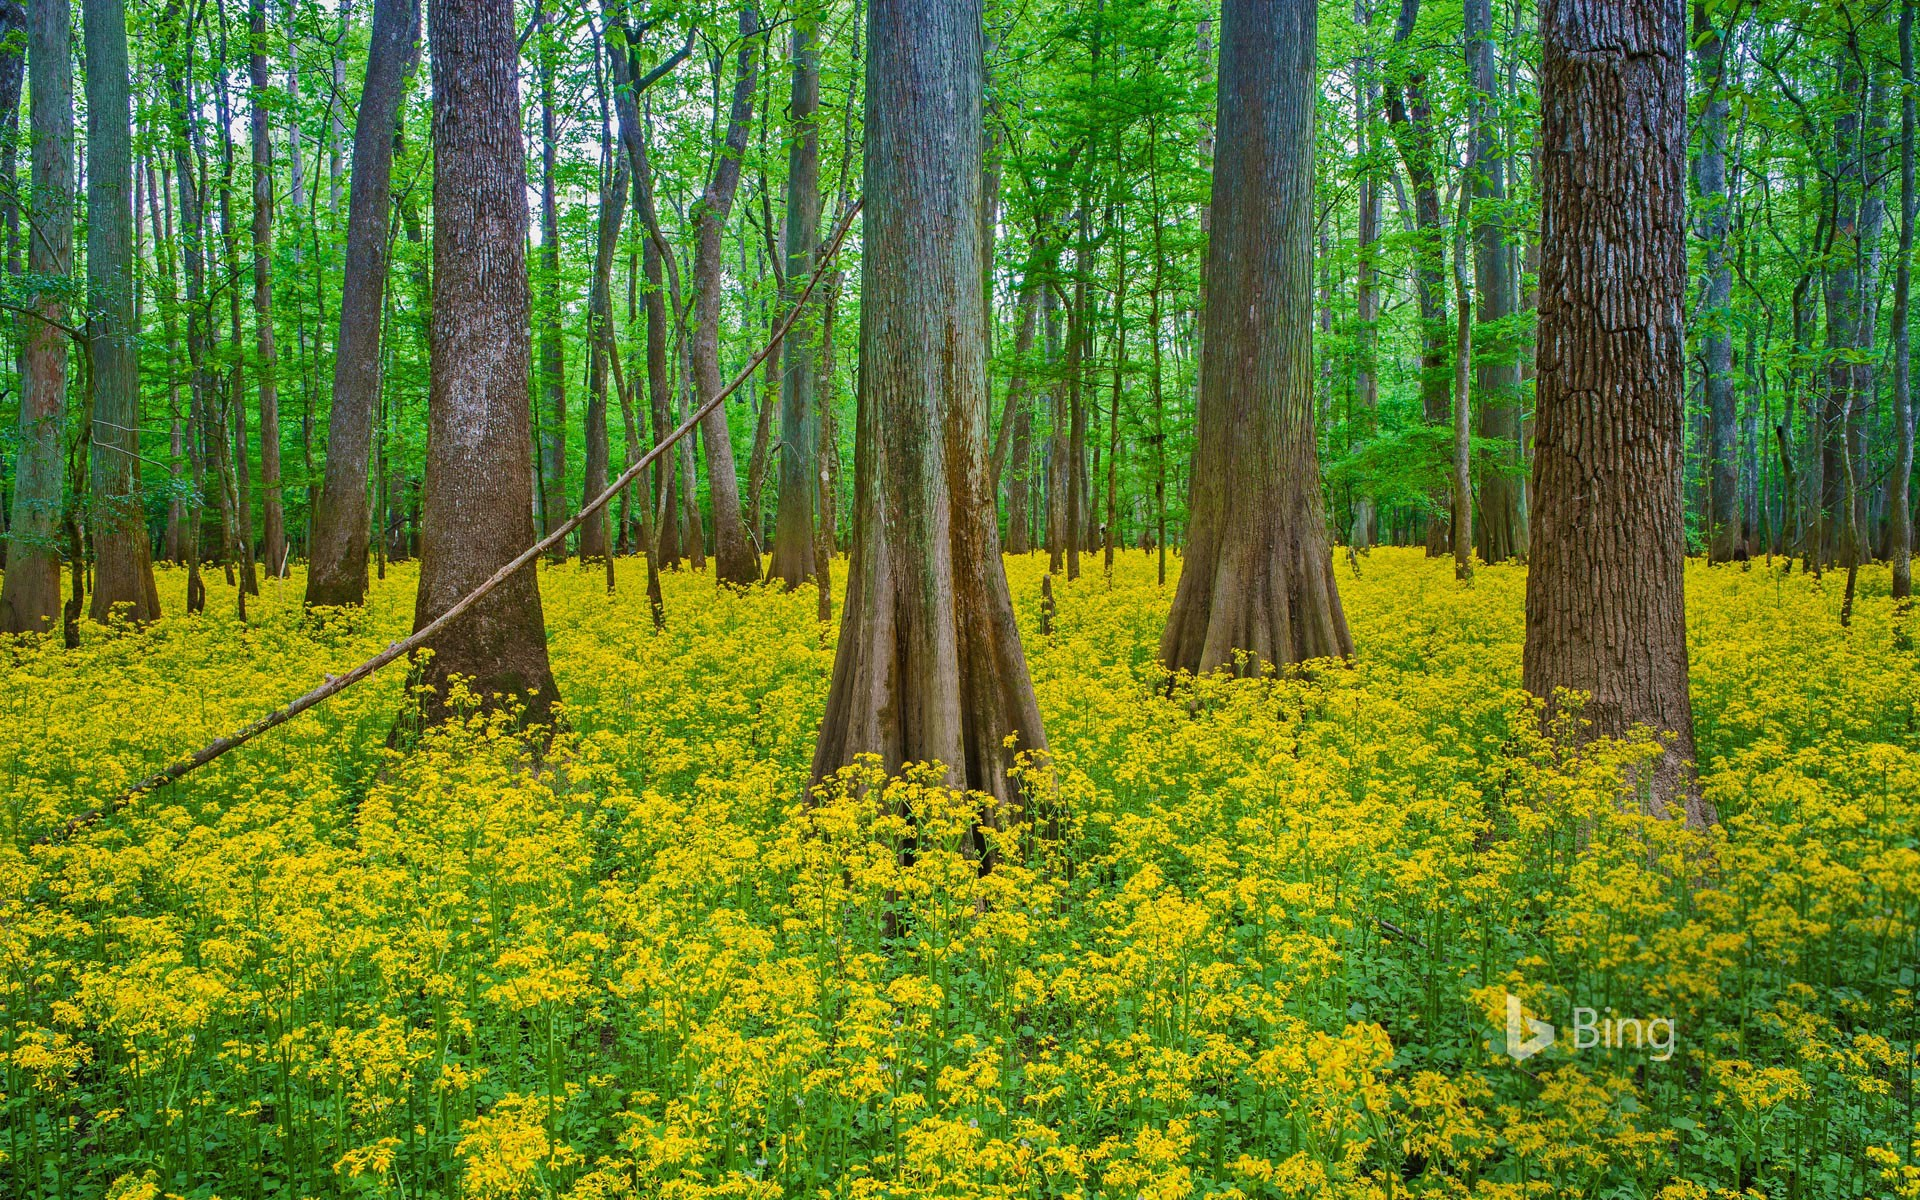 Blooming butterweed in Congaree National Park, South Carolina